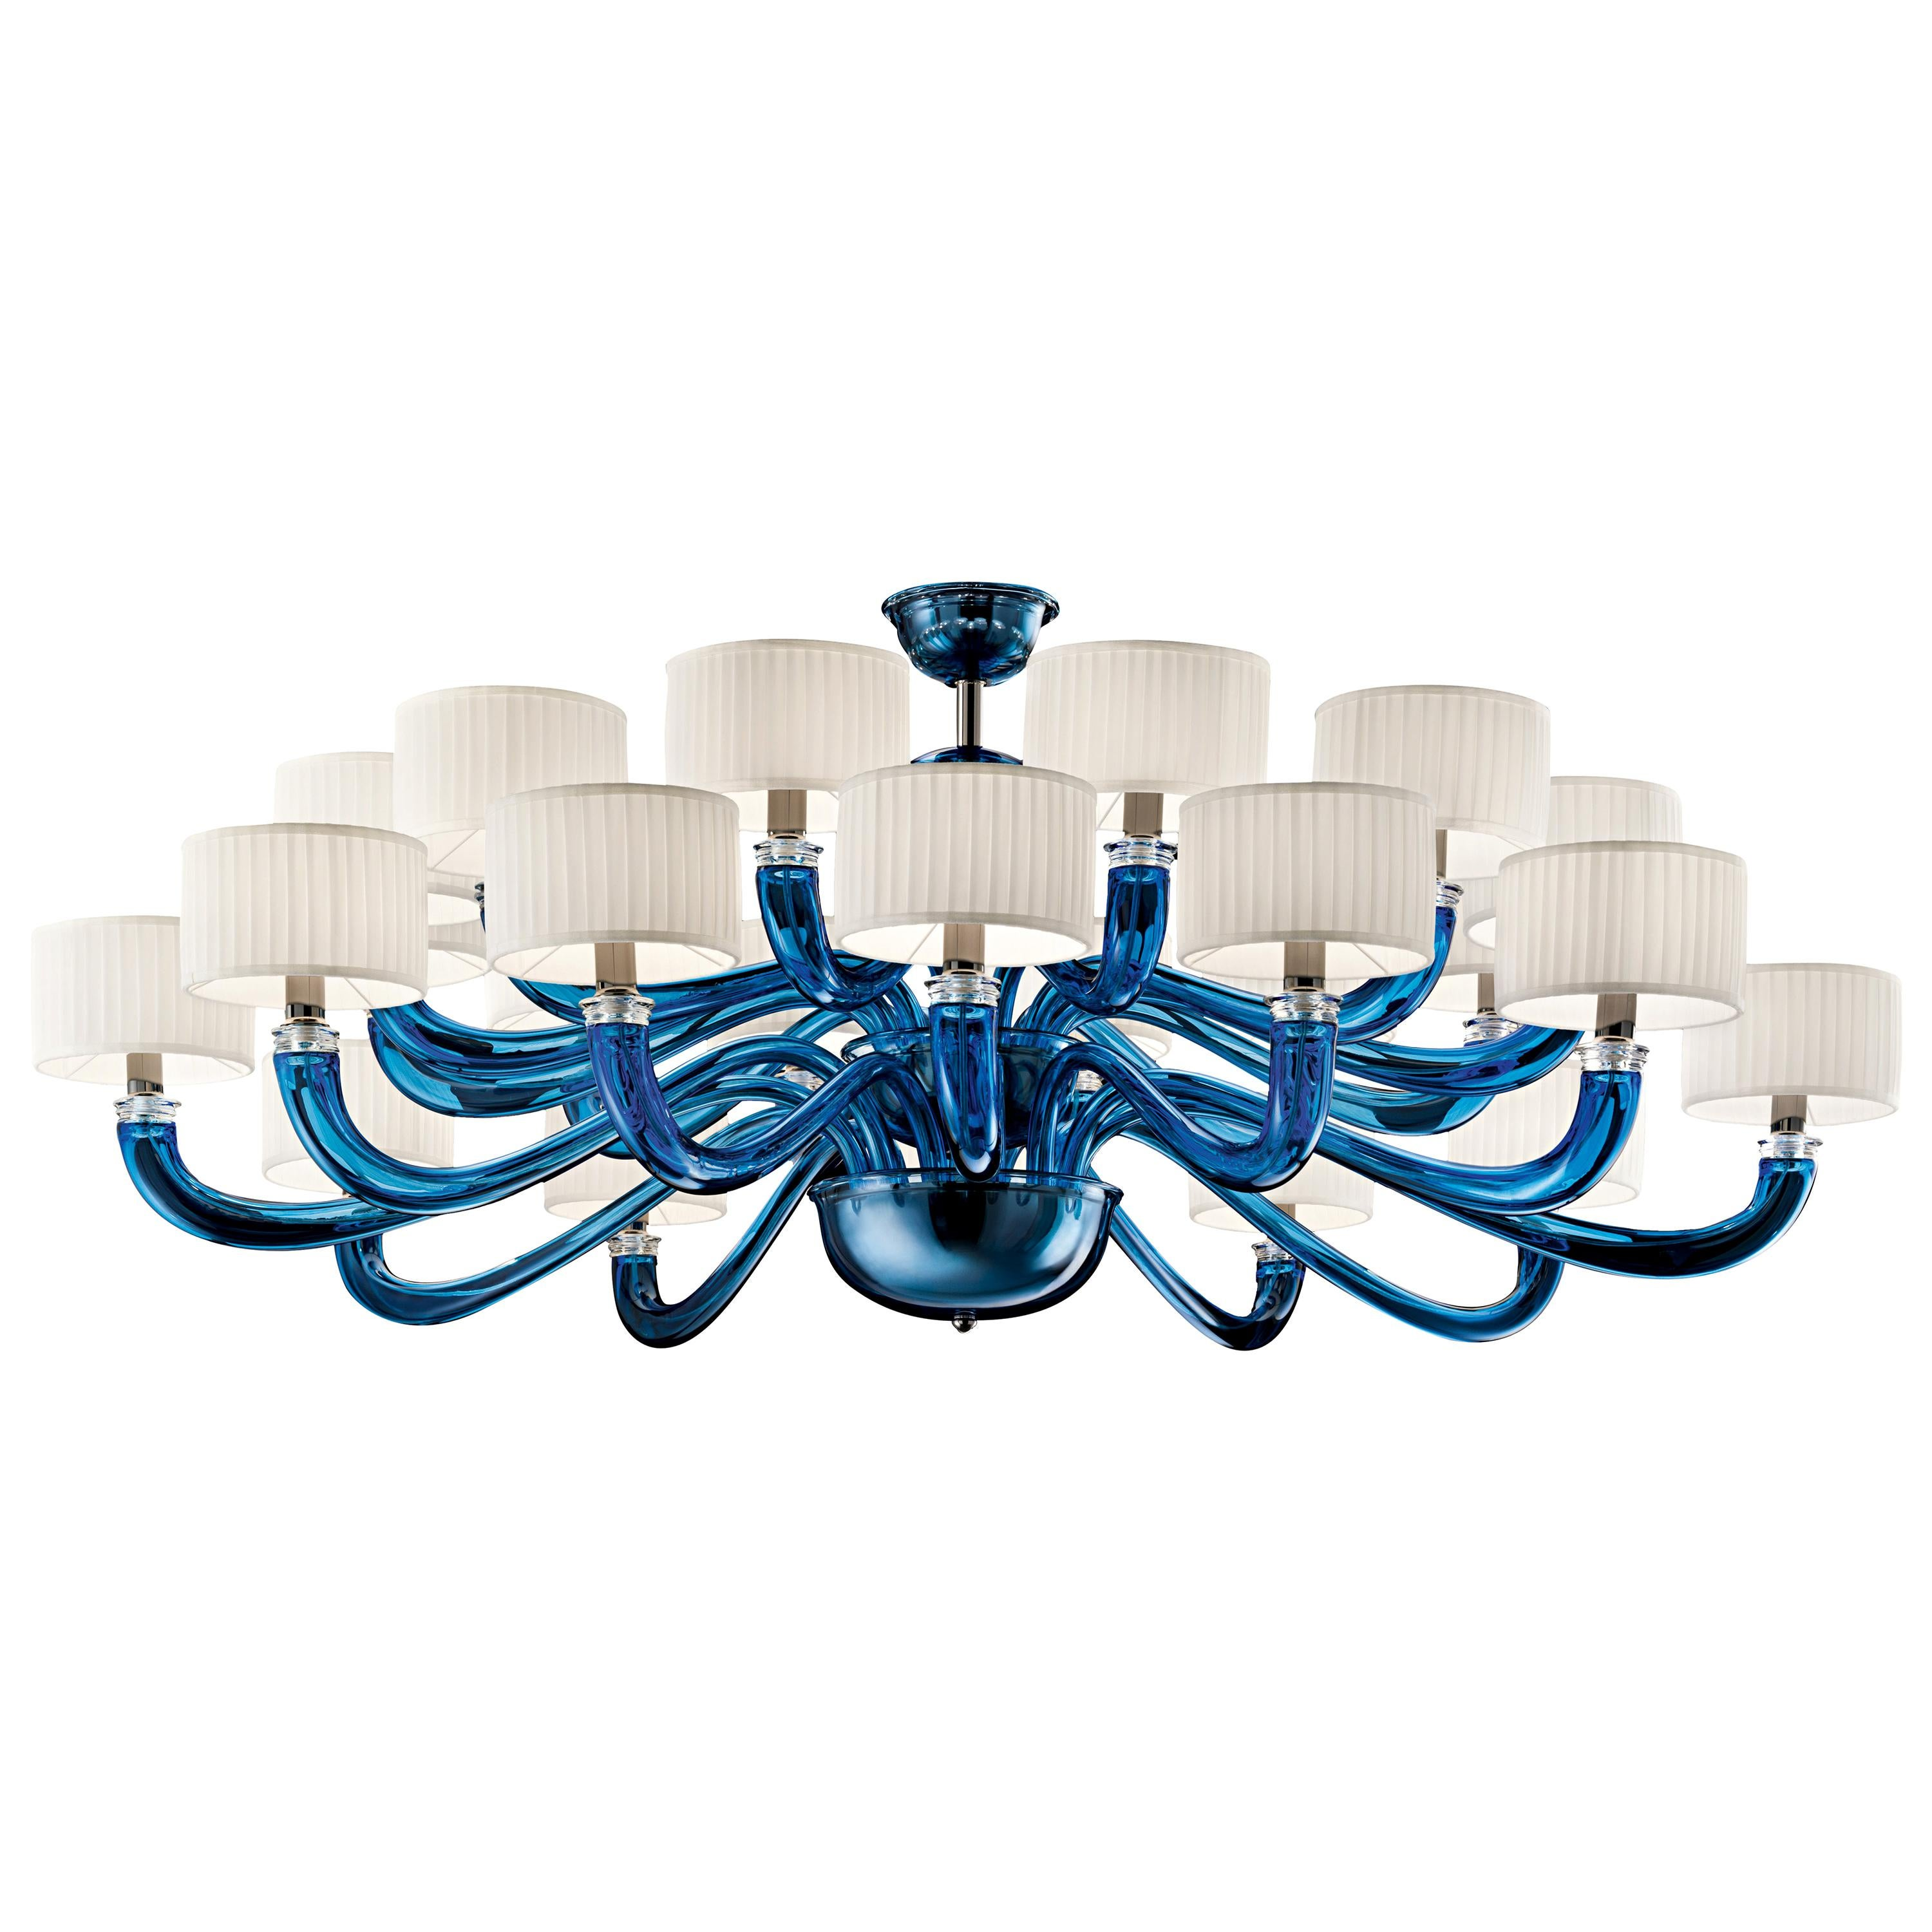 Alexandria 5597 24 Chandelier in Glass with White Shade, by Barovier&Toso